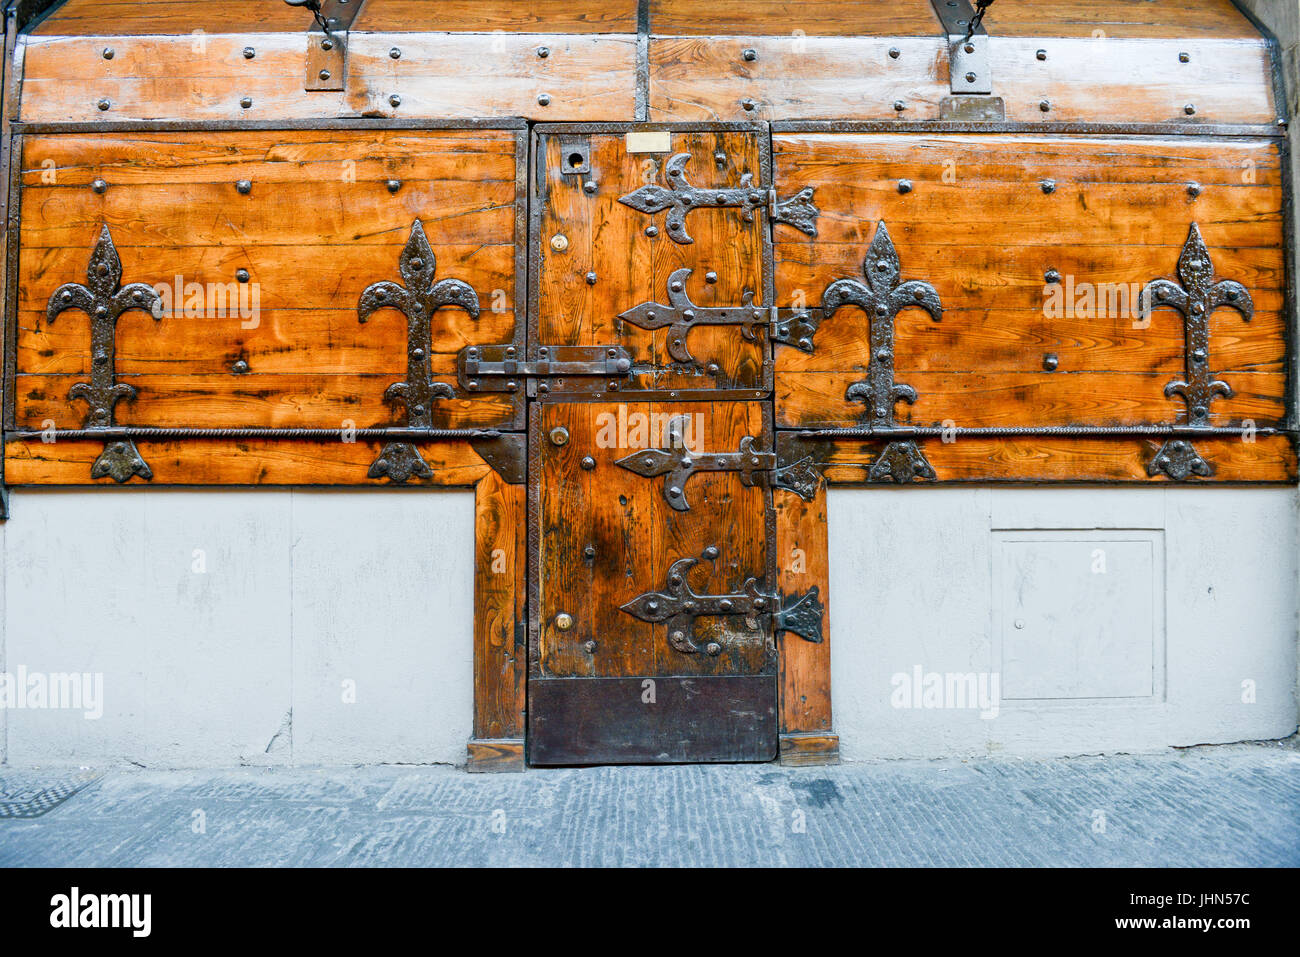 Antique closed door and windows of a shop at Firenze on Italy - Stock Image